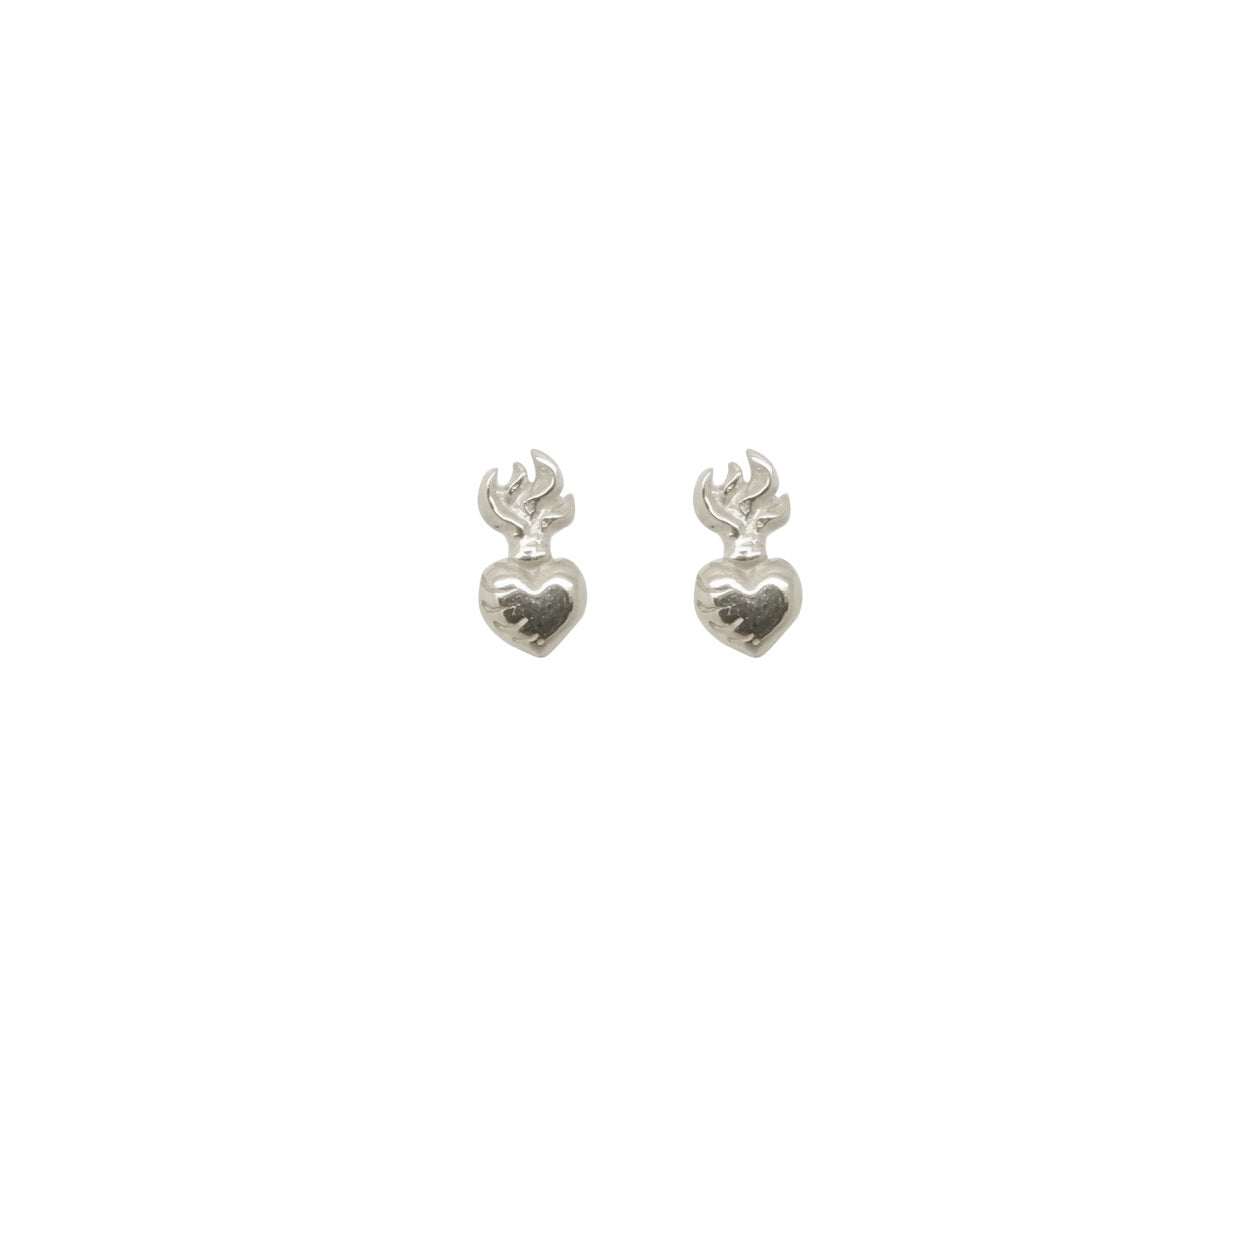 Hunt Of Hounds Sacred Heart Stud Earrings. Small hearts with flame.